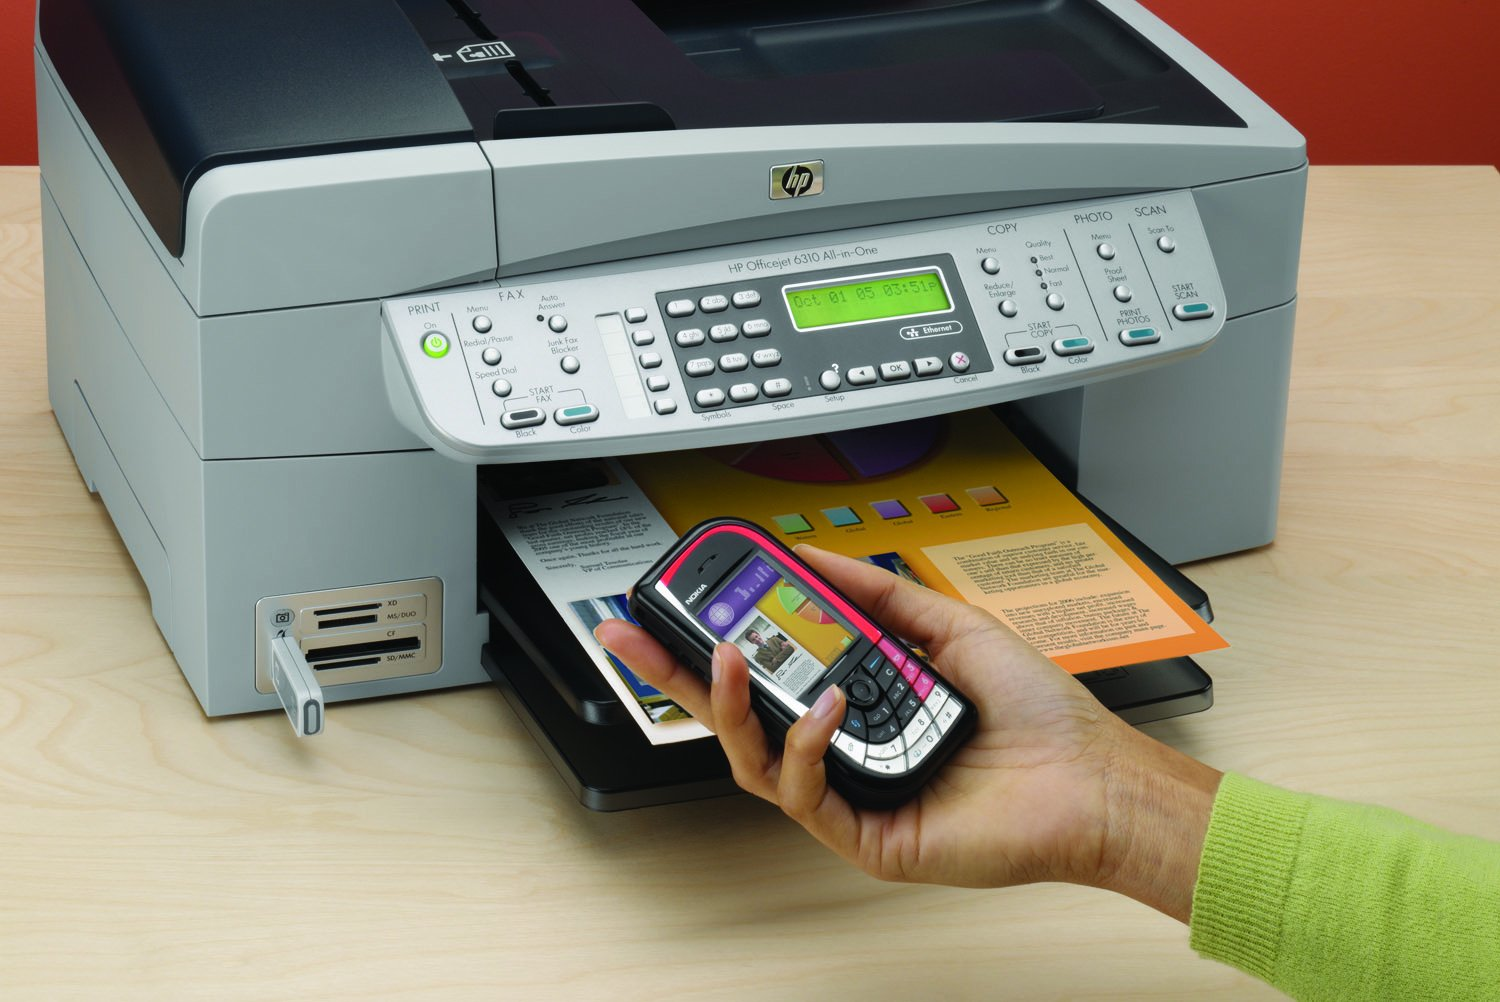 HP OFFICEJET 6310 ALL IN ONE SCANNER DRIVERS FOR WINDOWS